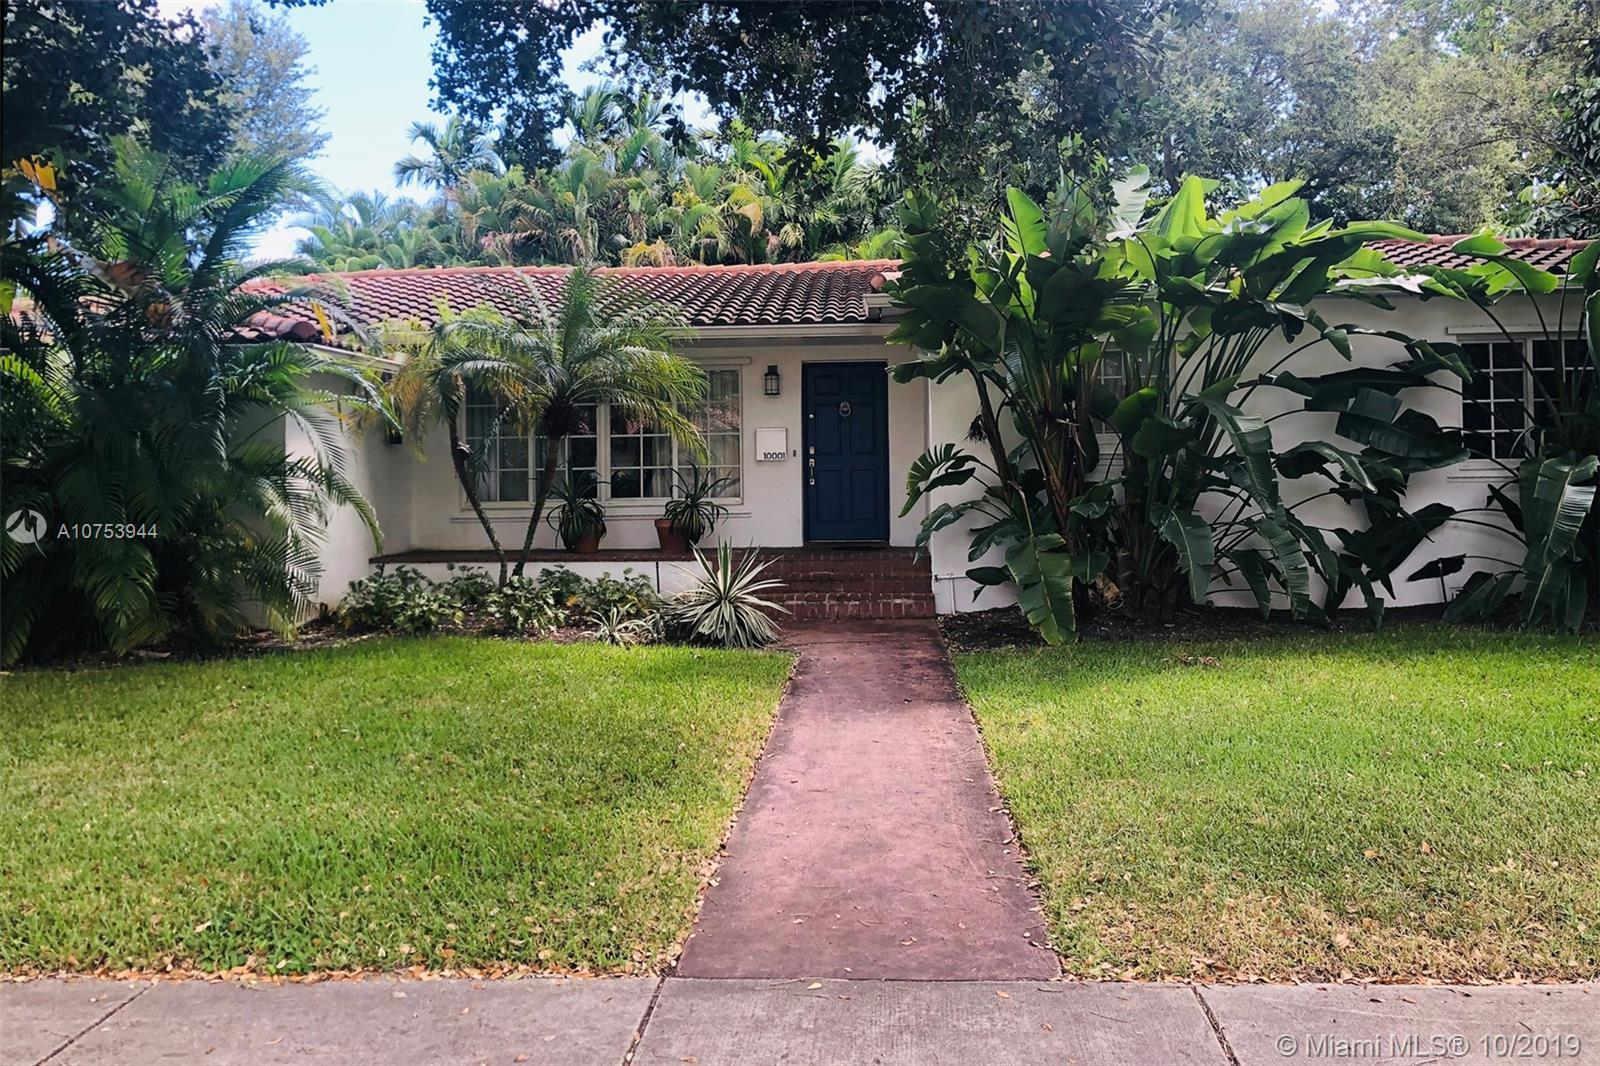 EXCELLENT OPPORTUNITY TO OWN/ INVEST A GREAT ONE STORY HOME IN A TRADITIONAL , DESIRABLE &  FAMILY O